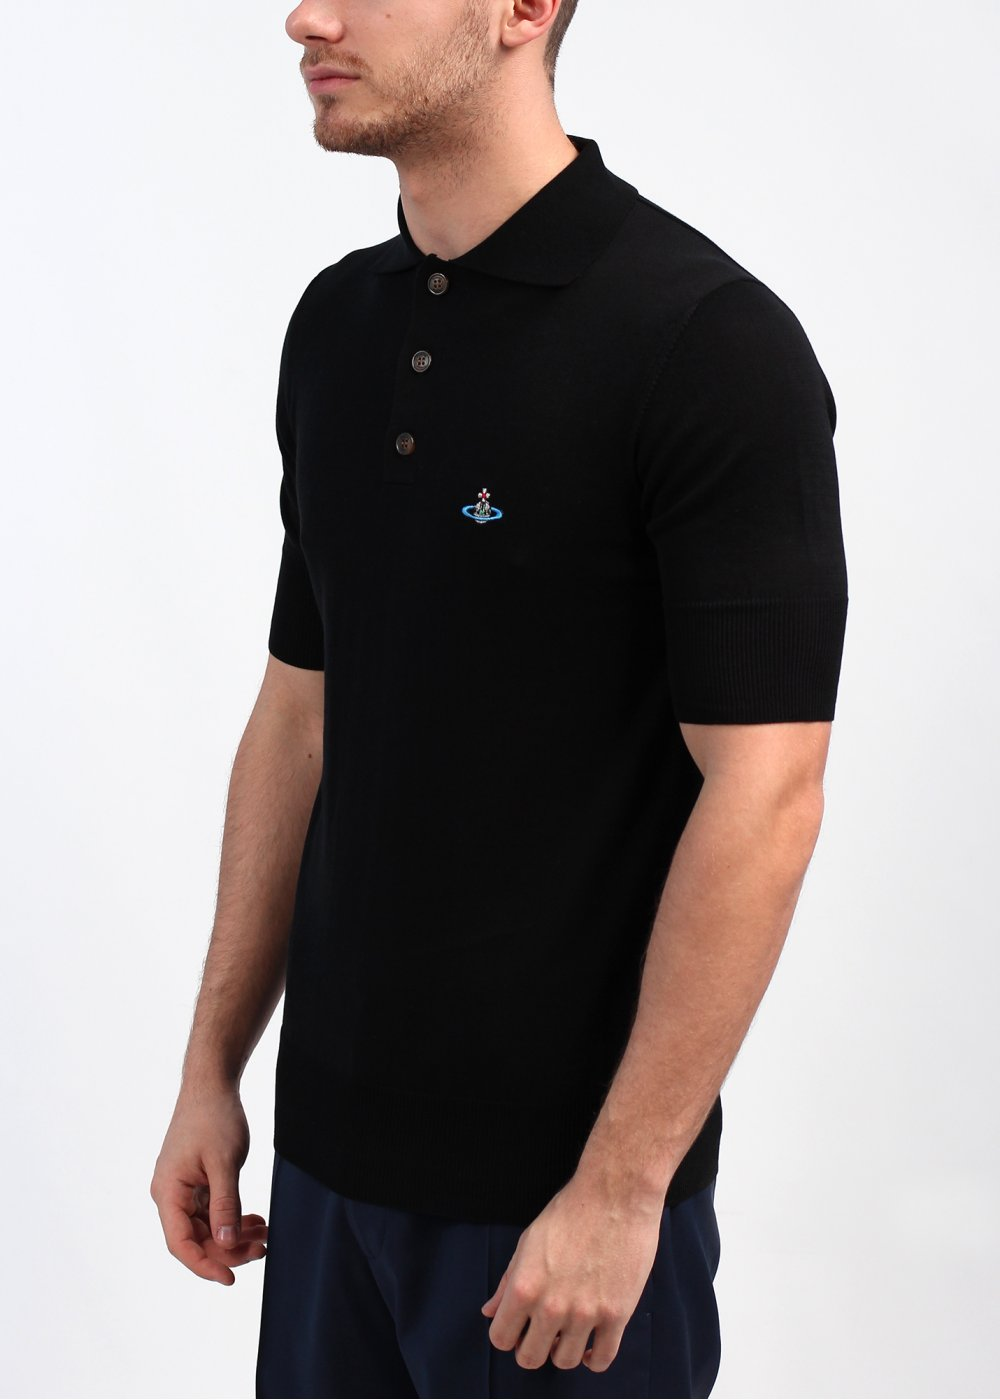 Vivienne westwood knit polo shirt black for Knitted polo shirt mens